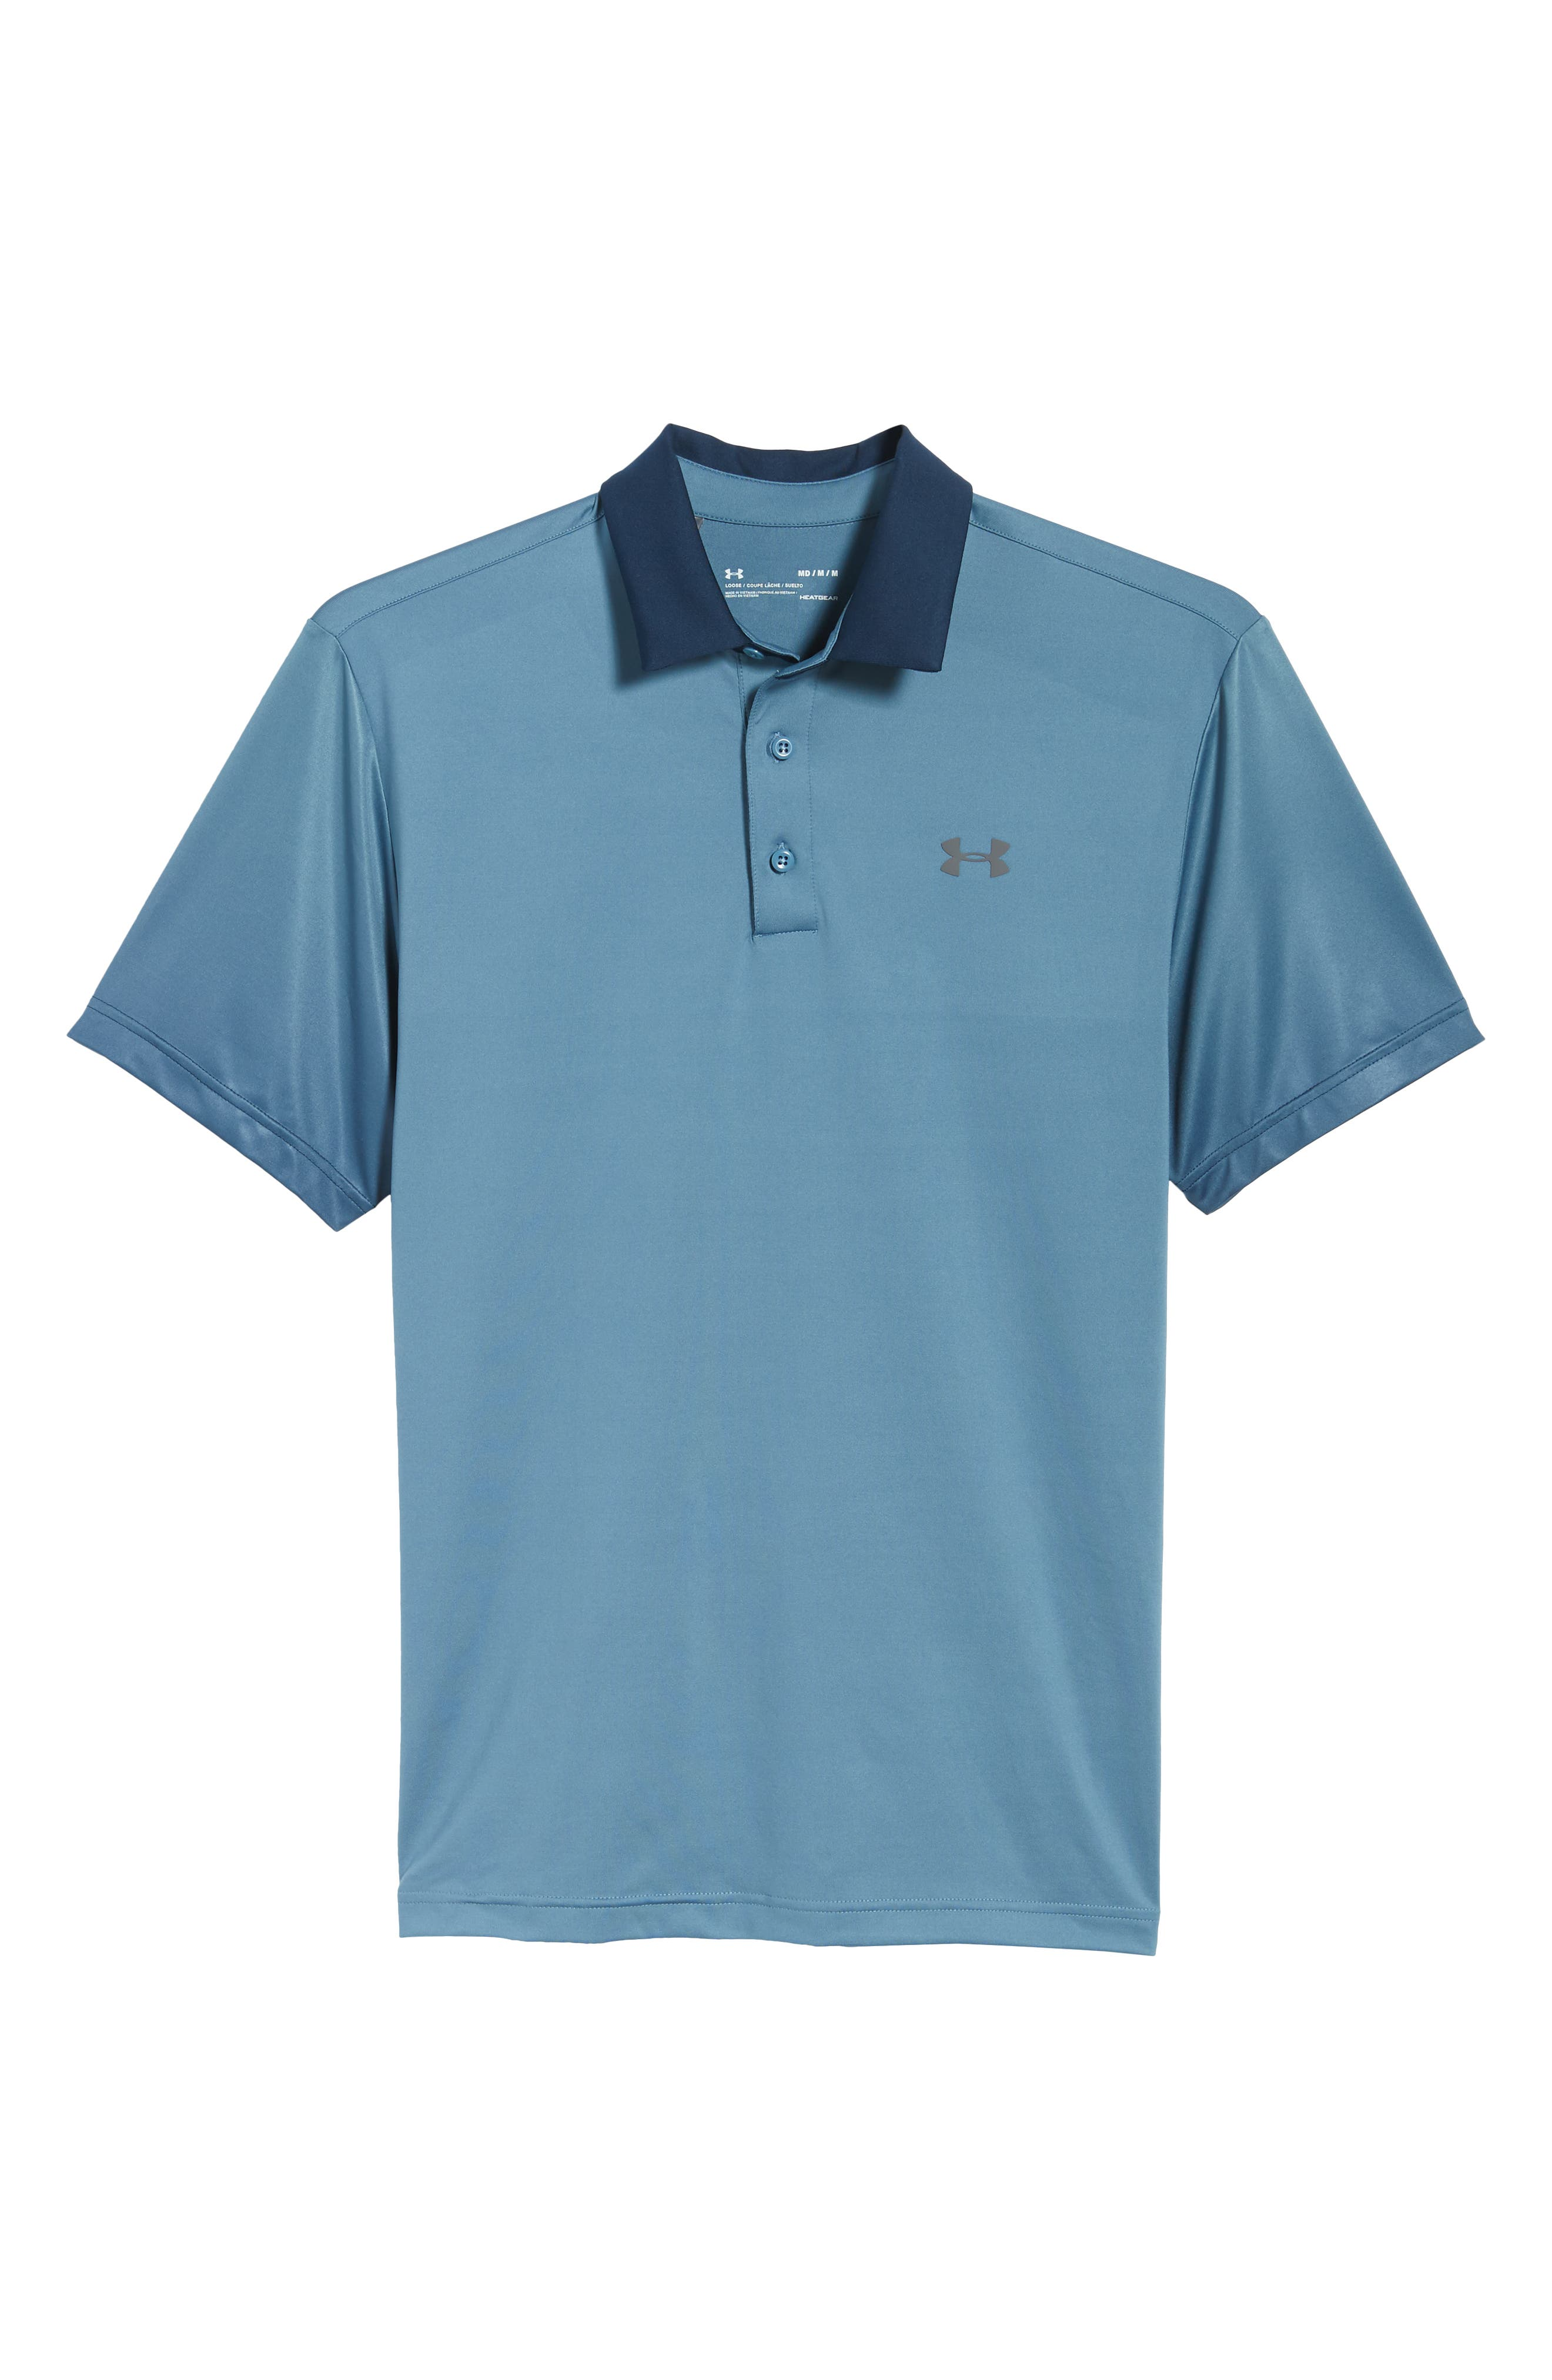 'Playoff' Loose Fit Short Sleeve Polo,                             Alternate thumbnail 294, color,